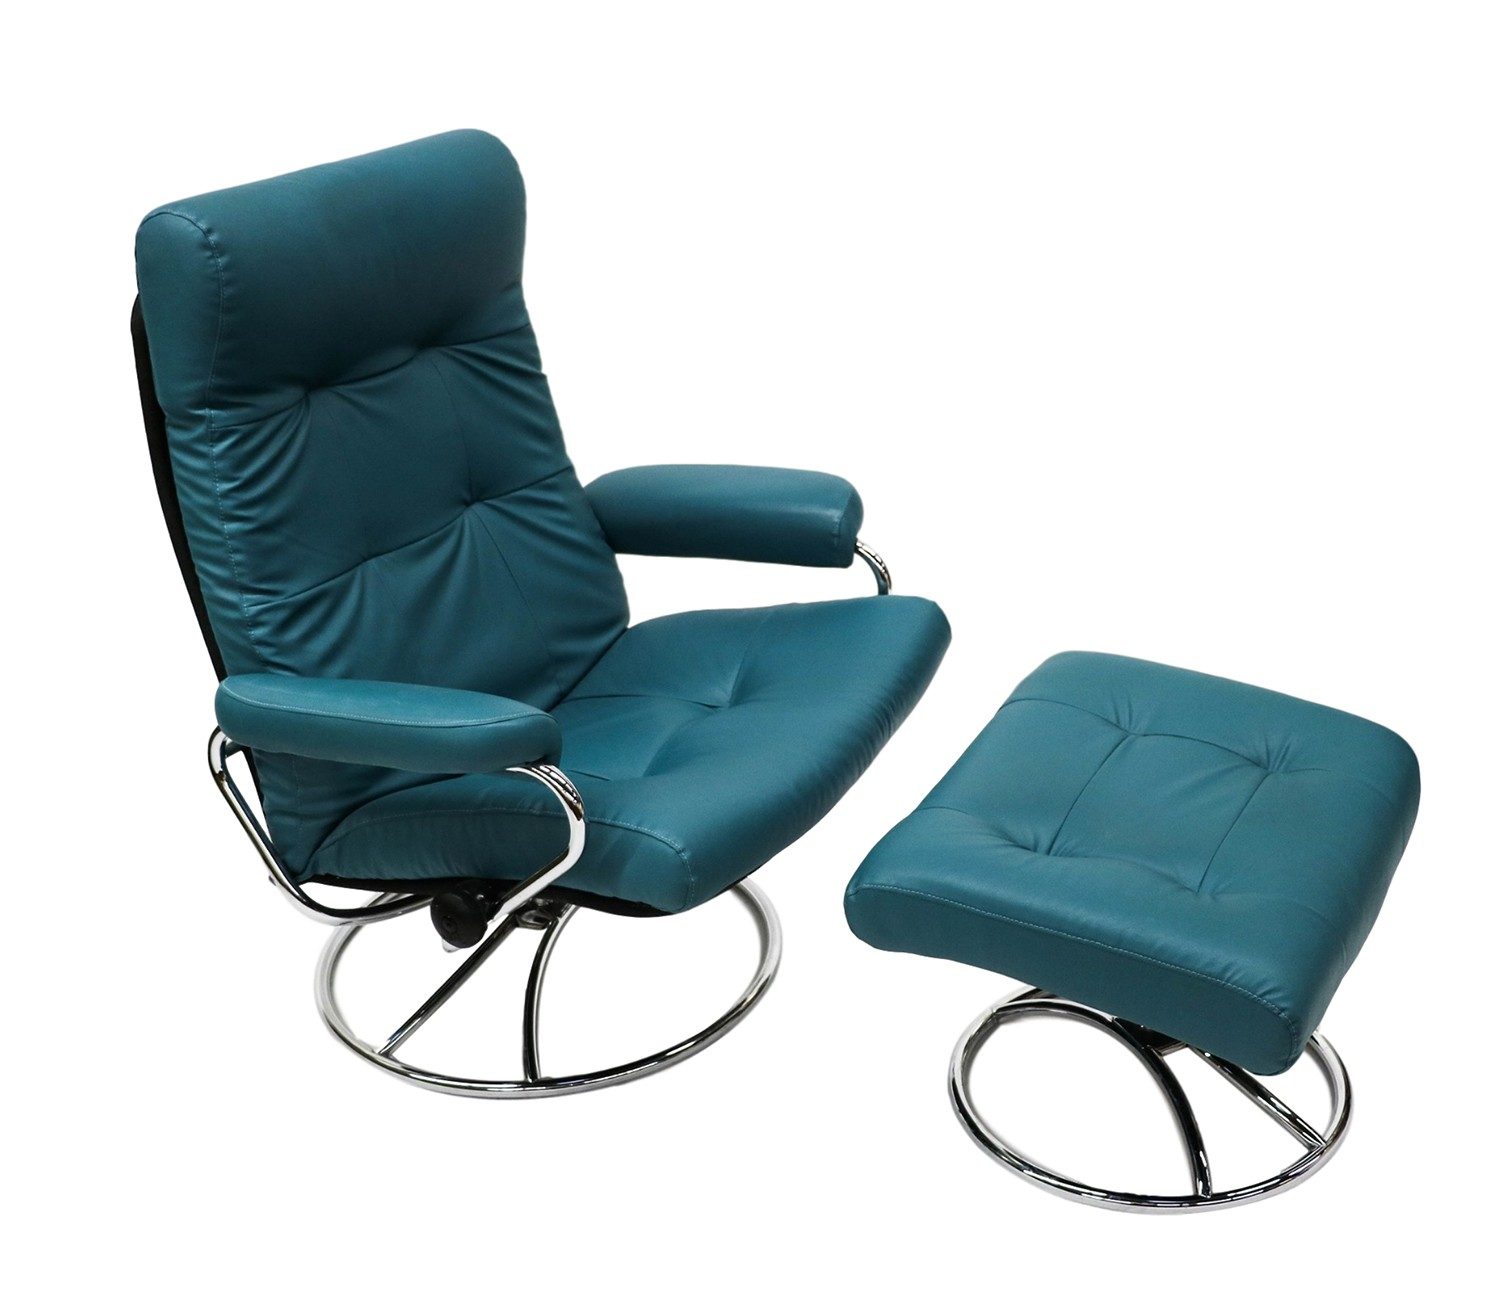 Ekornes Scandinavian Mid Century Reclining Lounge Chair and Ottoman